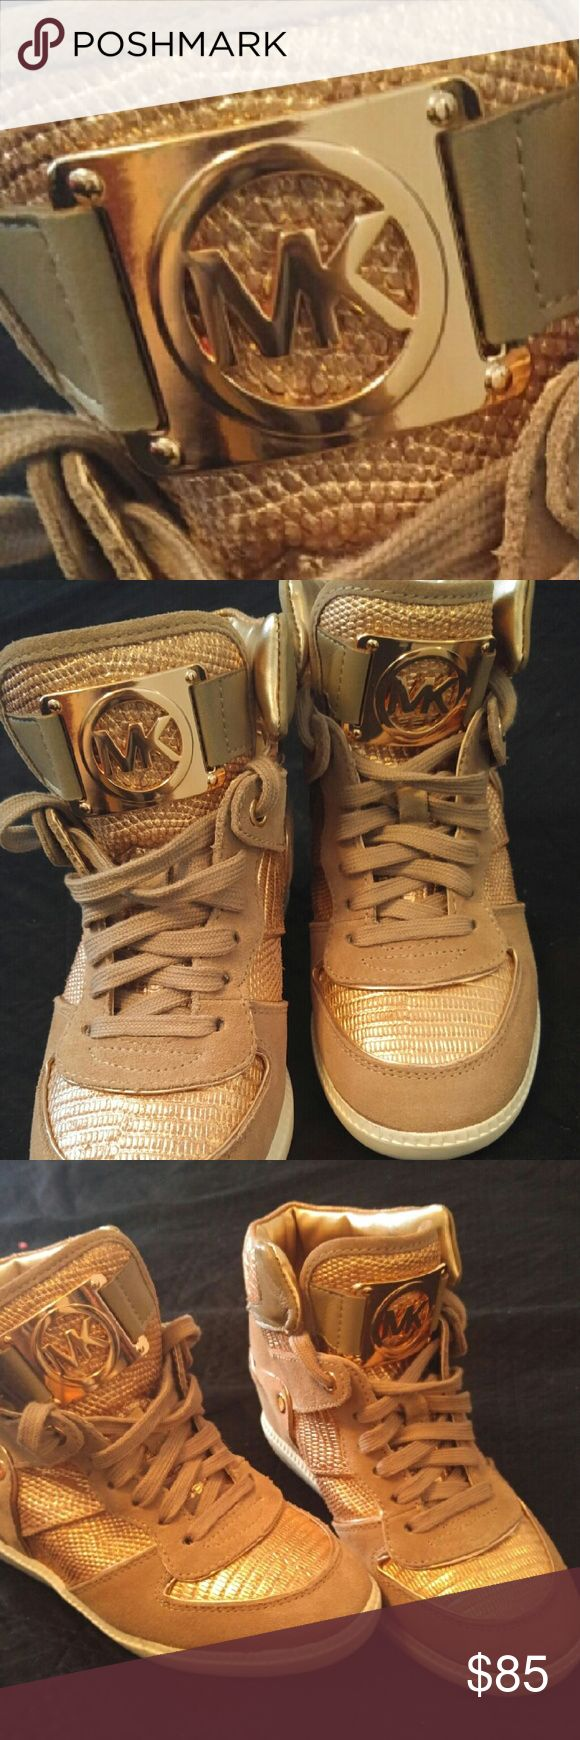 7.5 Michael Kors rose gold high top sneakers Stunning rose gold Michael Kors high top sneakers. These are GORGEOUS. Worn once. Killer with skinny jeans! Getting rid of them because my shoe collection is far too large already and these could be loved more by someone else sadly! Im telling you these shoes are awesome. Michael Kors Shoes Sneakers